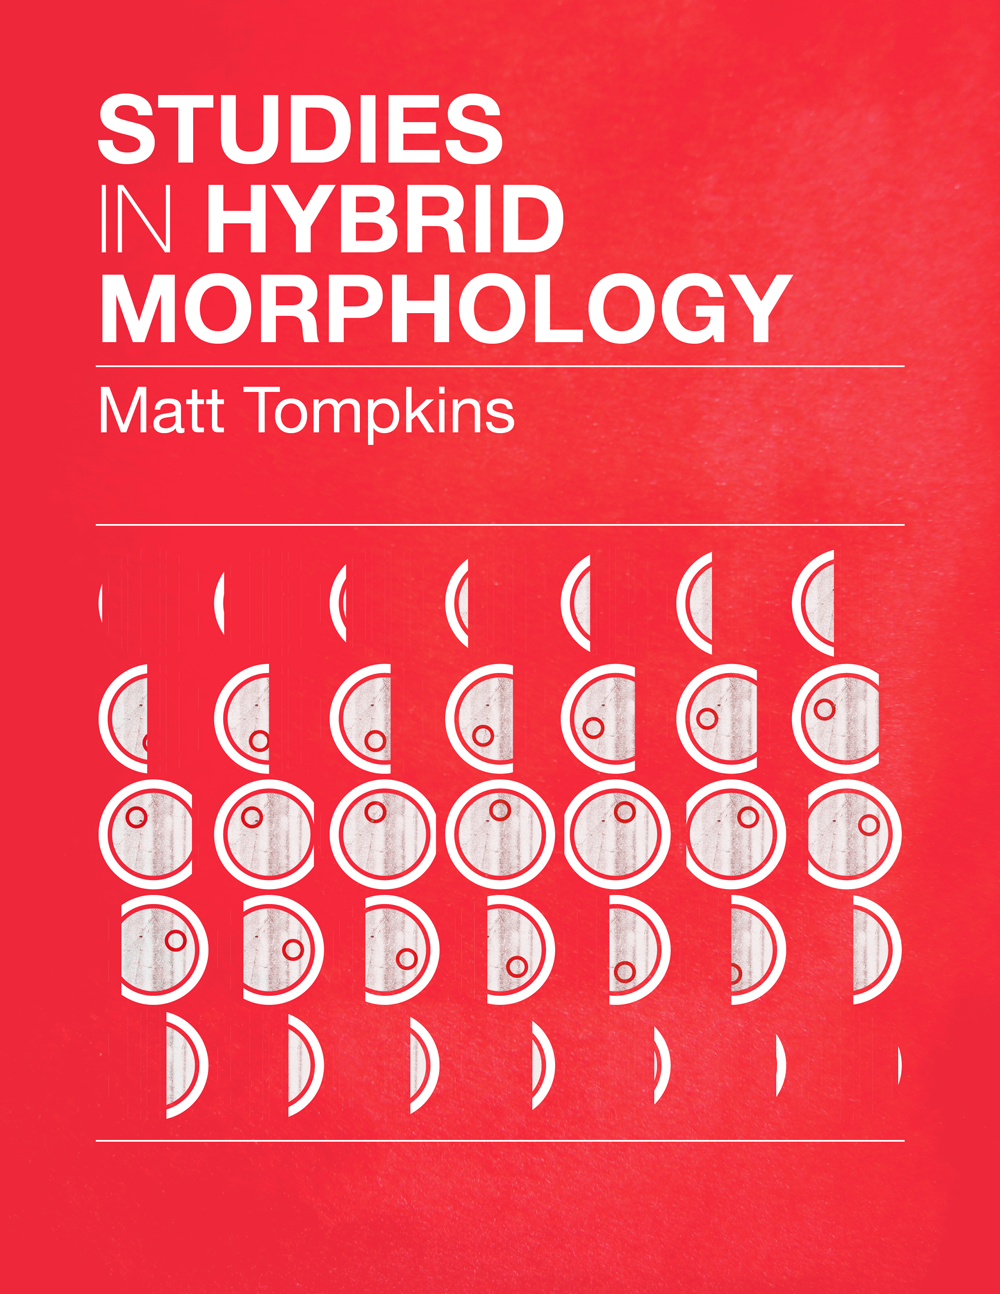 Studies in Hybrid Morphology